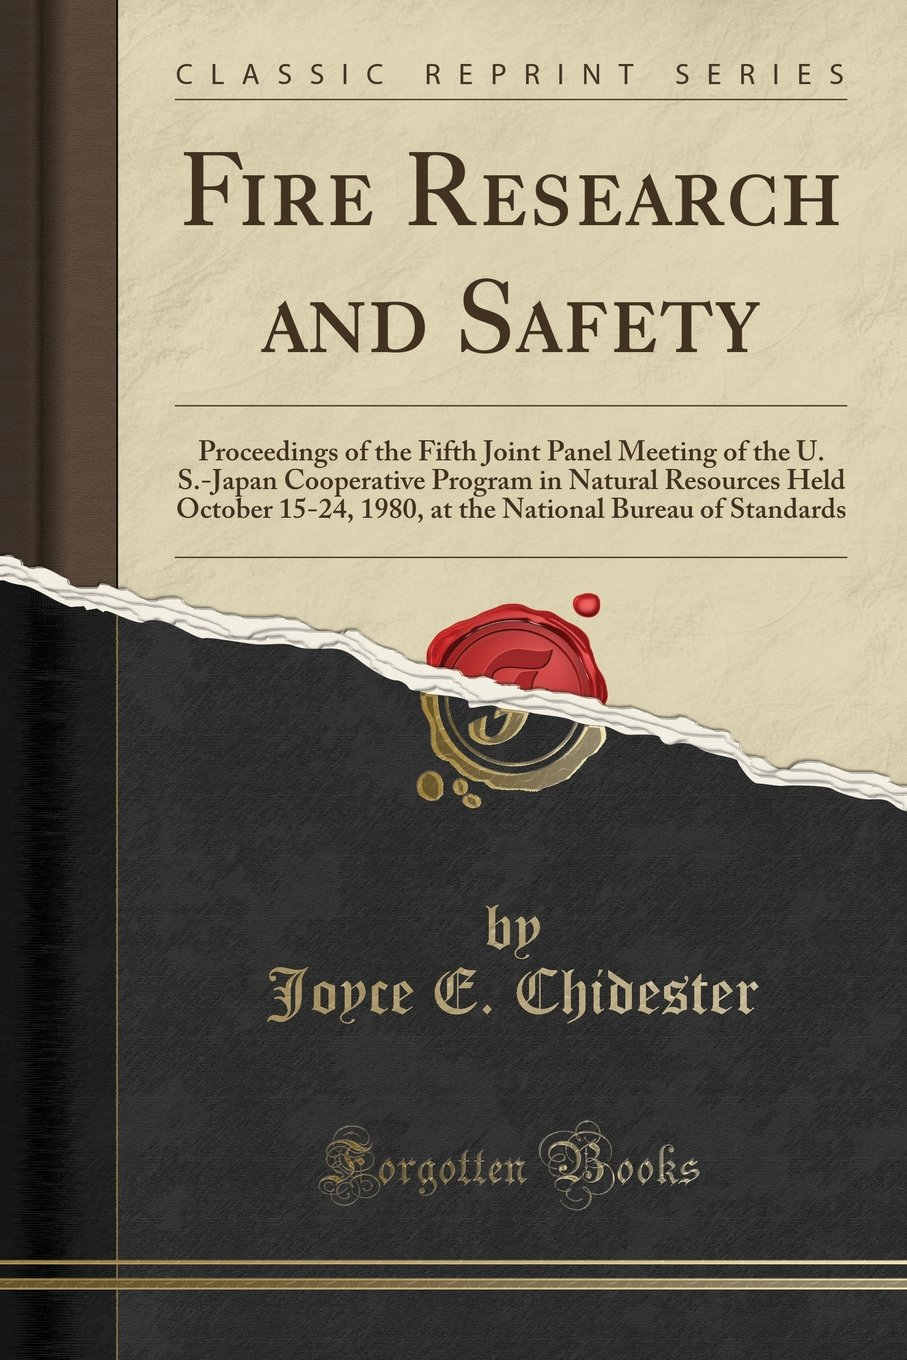 Download Fire Research and Safety: Proceedings of the Fifth Joint Panel Meeting of the U. S.-Japan Cooperative Program in Natural Resources Held October 15-24, ... Bureau of Standards (Classic Reprint) ebook